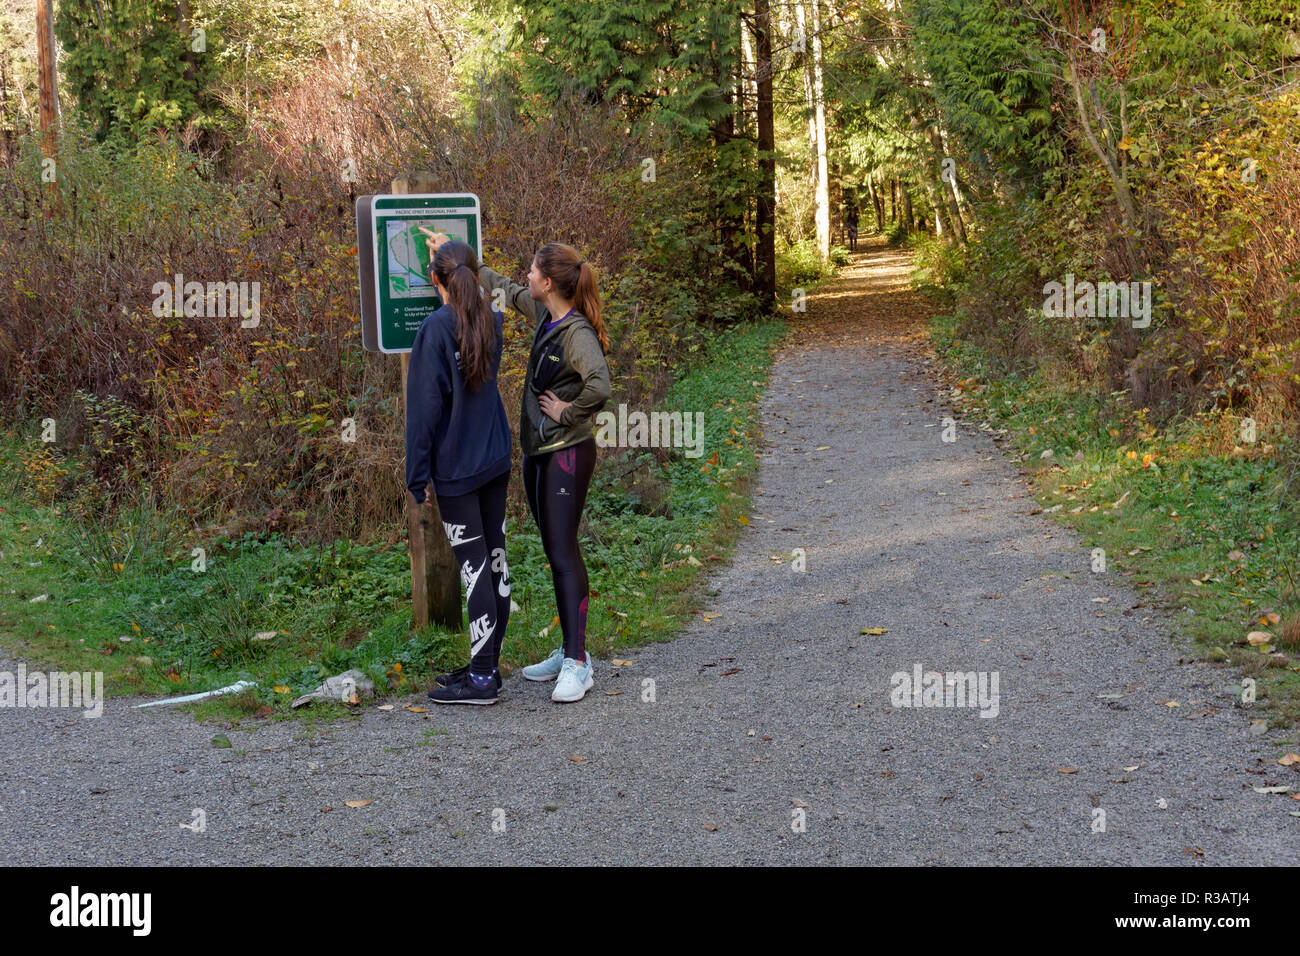 two-young-women-hikers-looking-at-a-trai